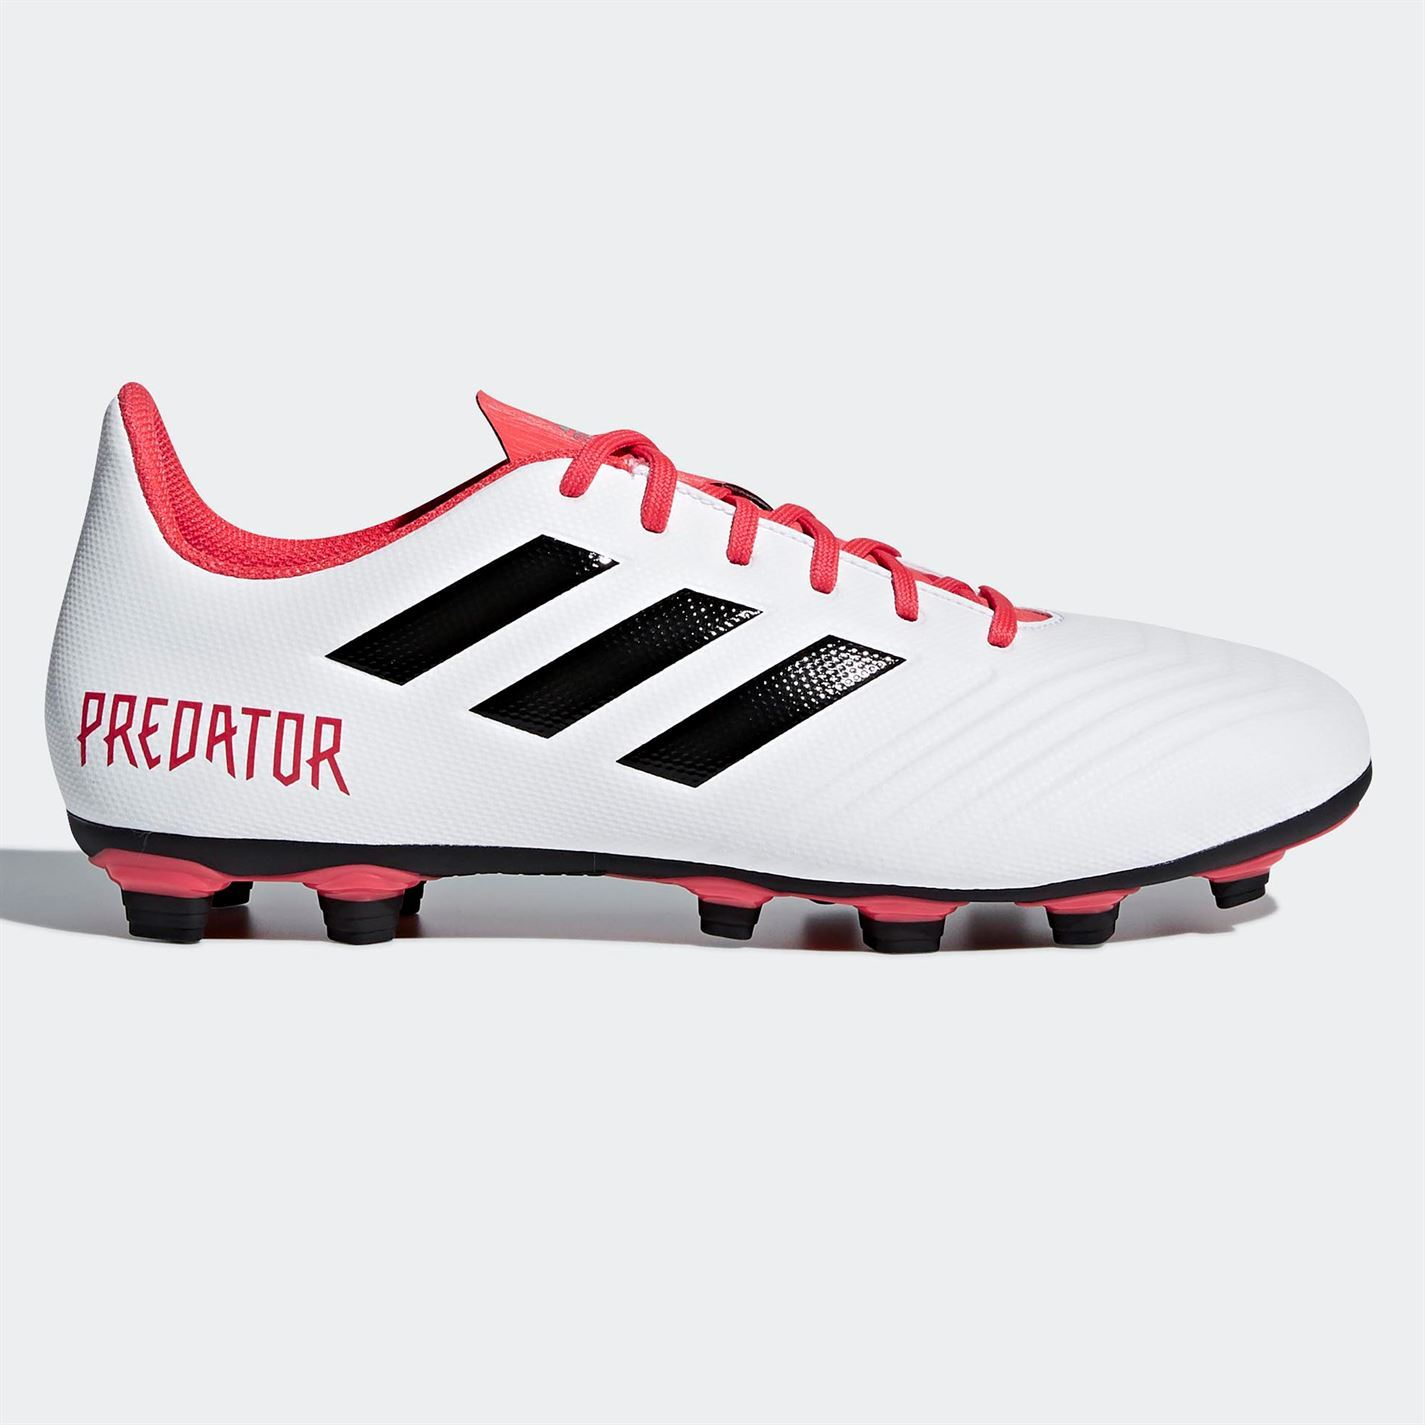 ca6f761c1 ... adidas Predator 18.4 Firm Ground Football Boots Mens White Red Soccer  Cleats ...